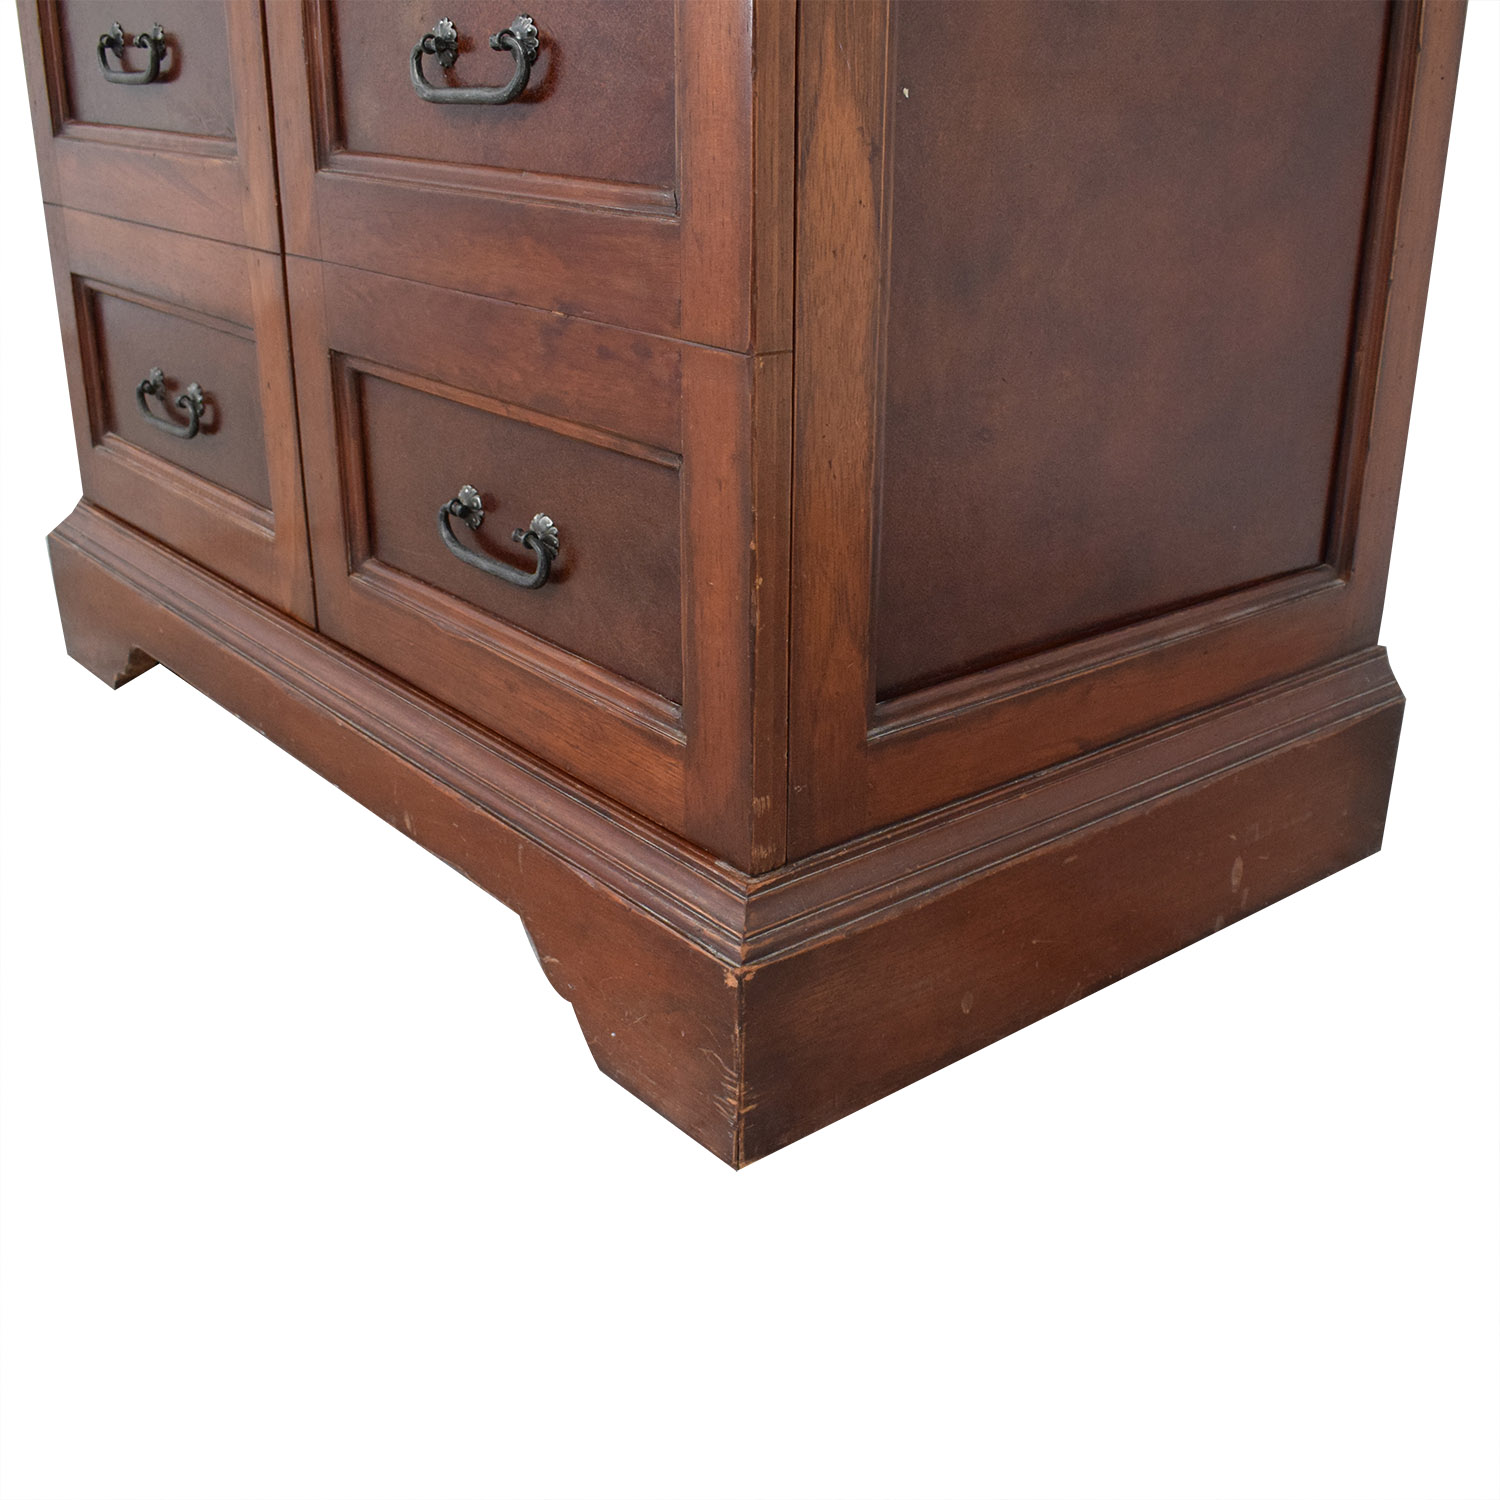 Domain Domain Armoire with Drawers nj